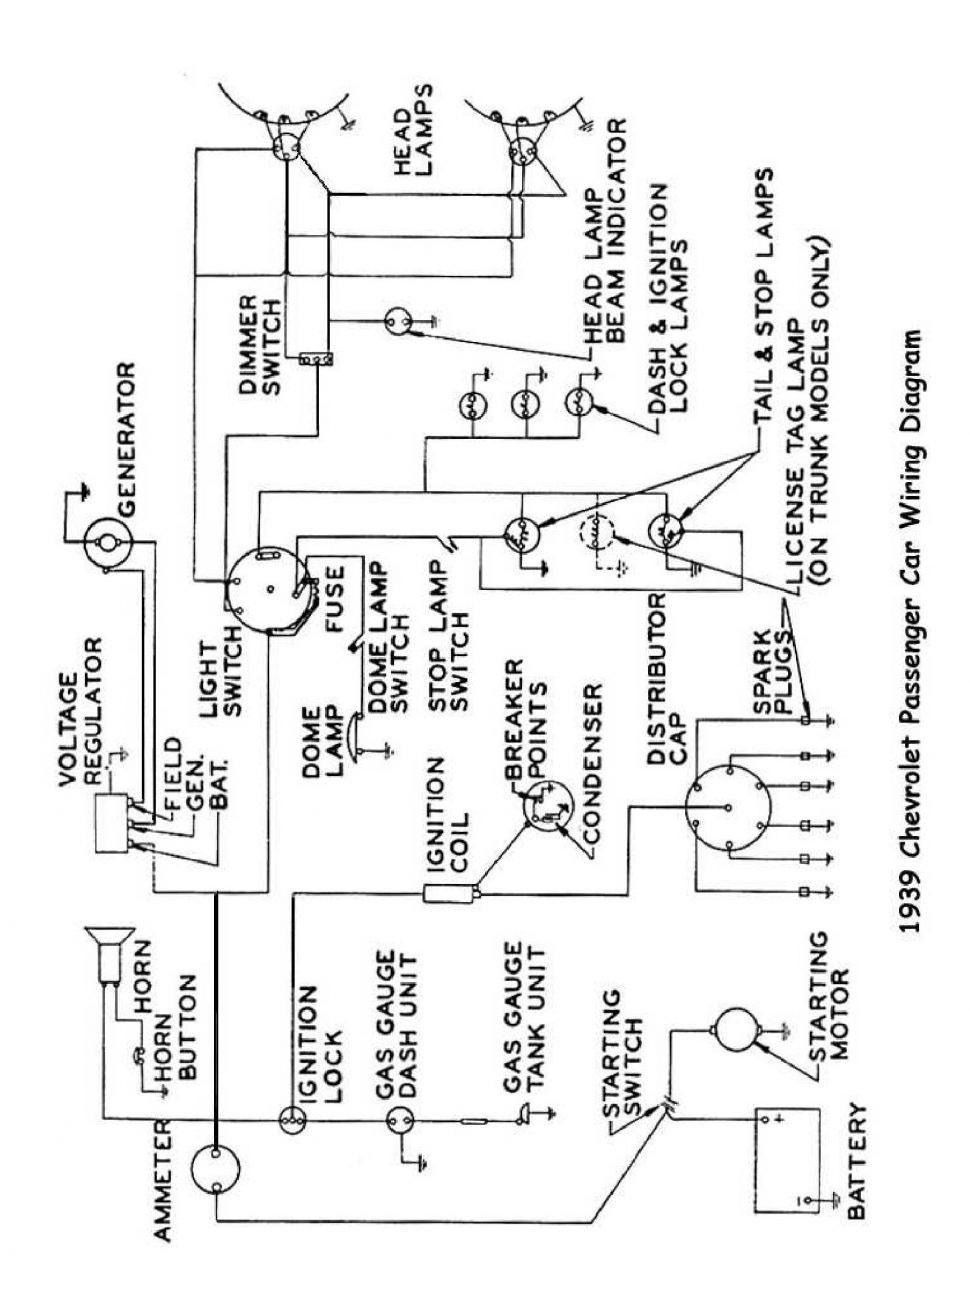 Peachy Remote For Car Wiring Diagrams Basic Electronics Wiring Diagram Wiring 101 Mecadwellnesstrialsorg